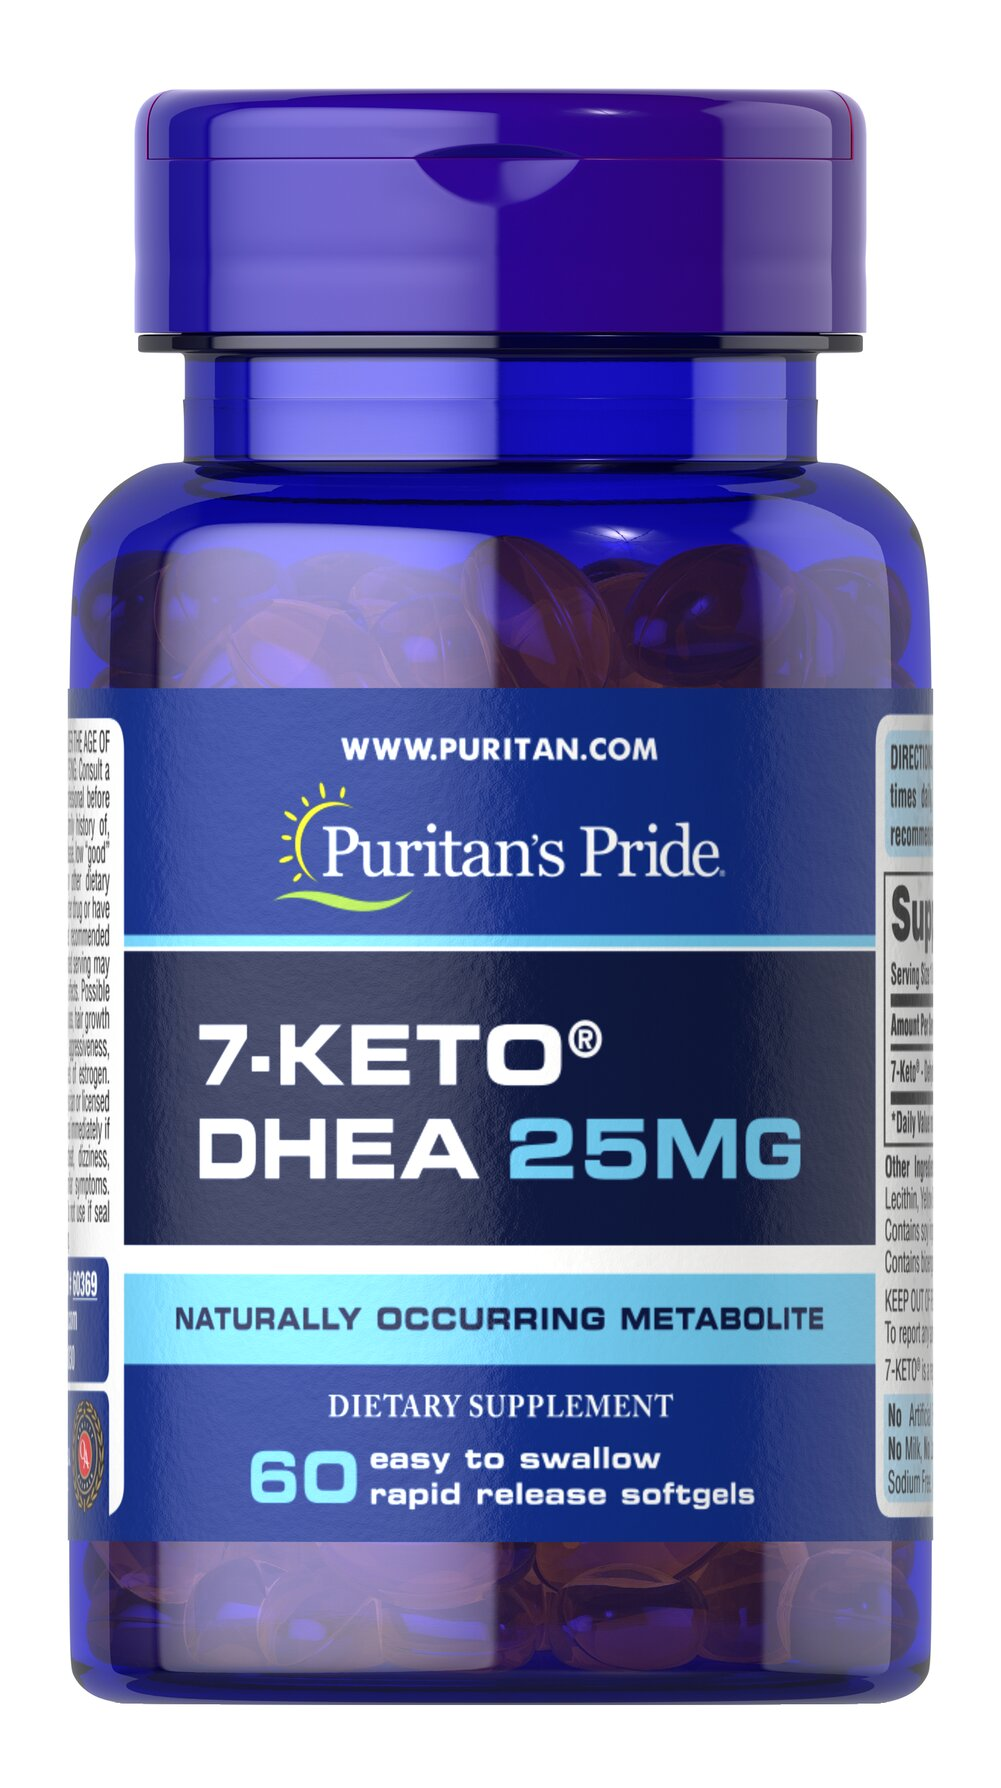 7-Keto™ DHEA 25 mg <p>DHEA levels can decline with age, and 7-Keto™ is a naturally occurring metabolite of DHEA. 7-Keto™ gives you what the body naturally produces. Each stimulant-free, caffeine-free softgel contains 25 mg of high quality 7-Keto™ DHEA in softgel form.</p> 60 Softgels 25 mg $21.59